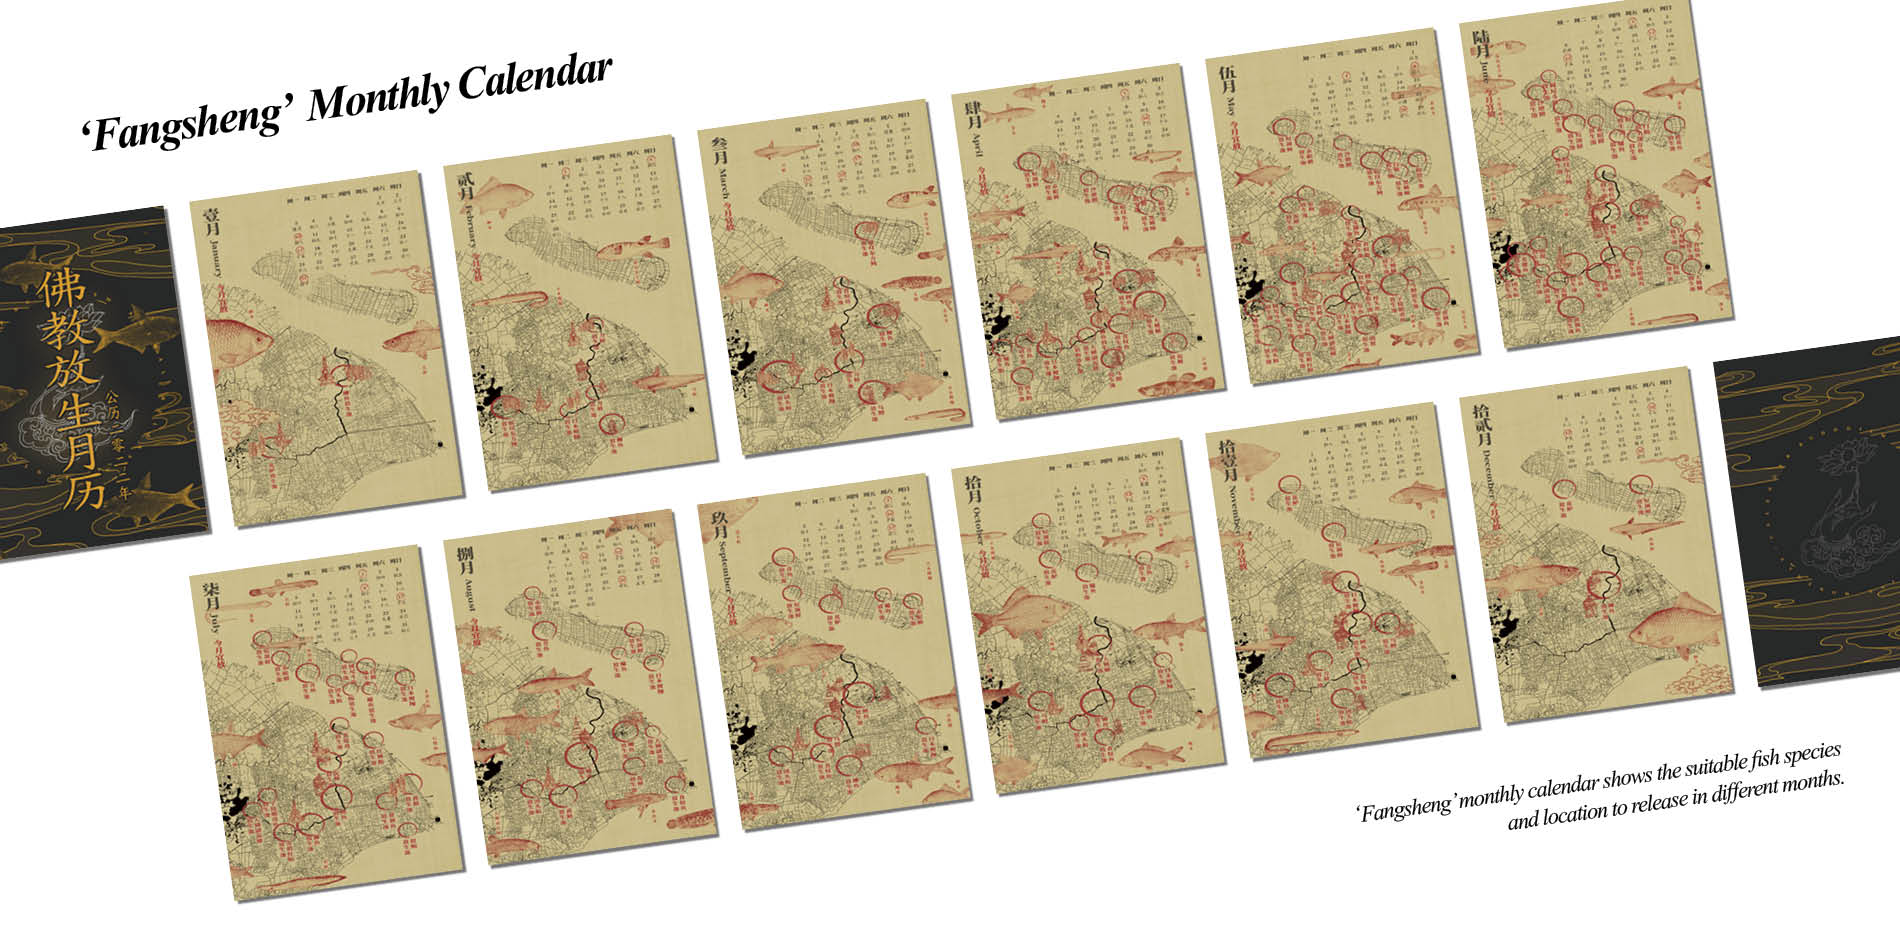 The Display of 'Fangsheng' Monthly Calendar